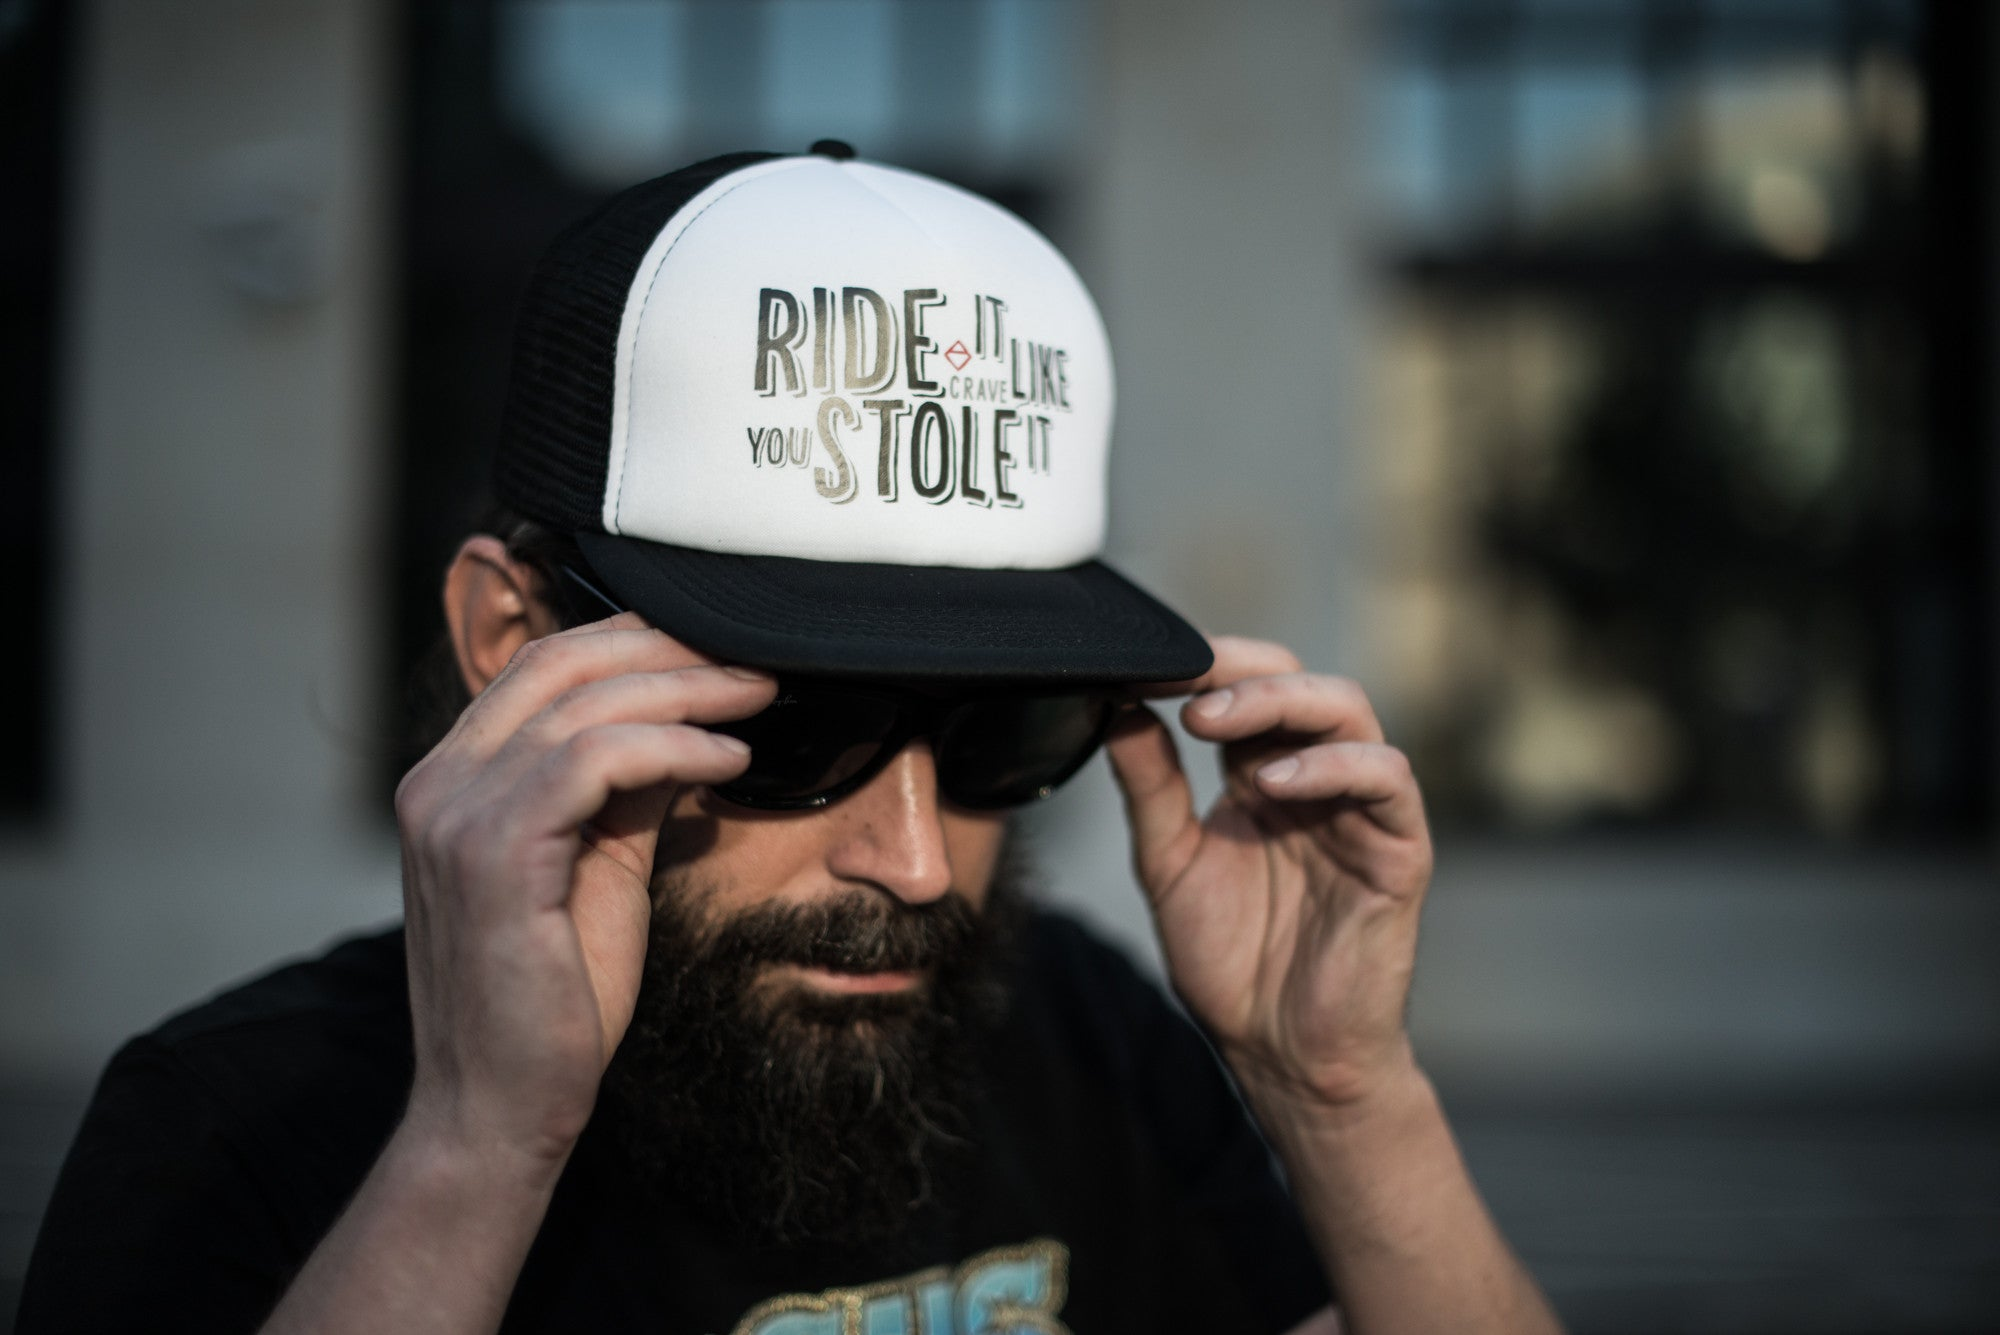 - Ride it like You stole it - Crave snap back cap